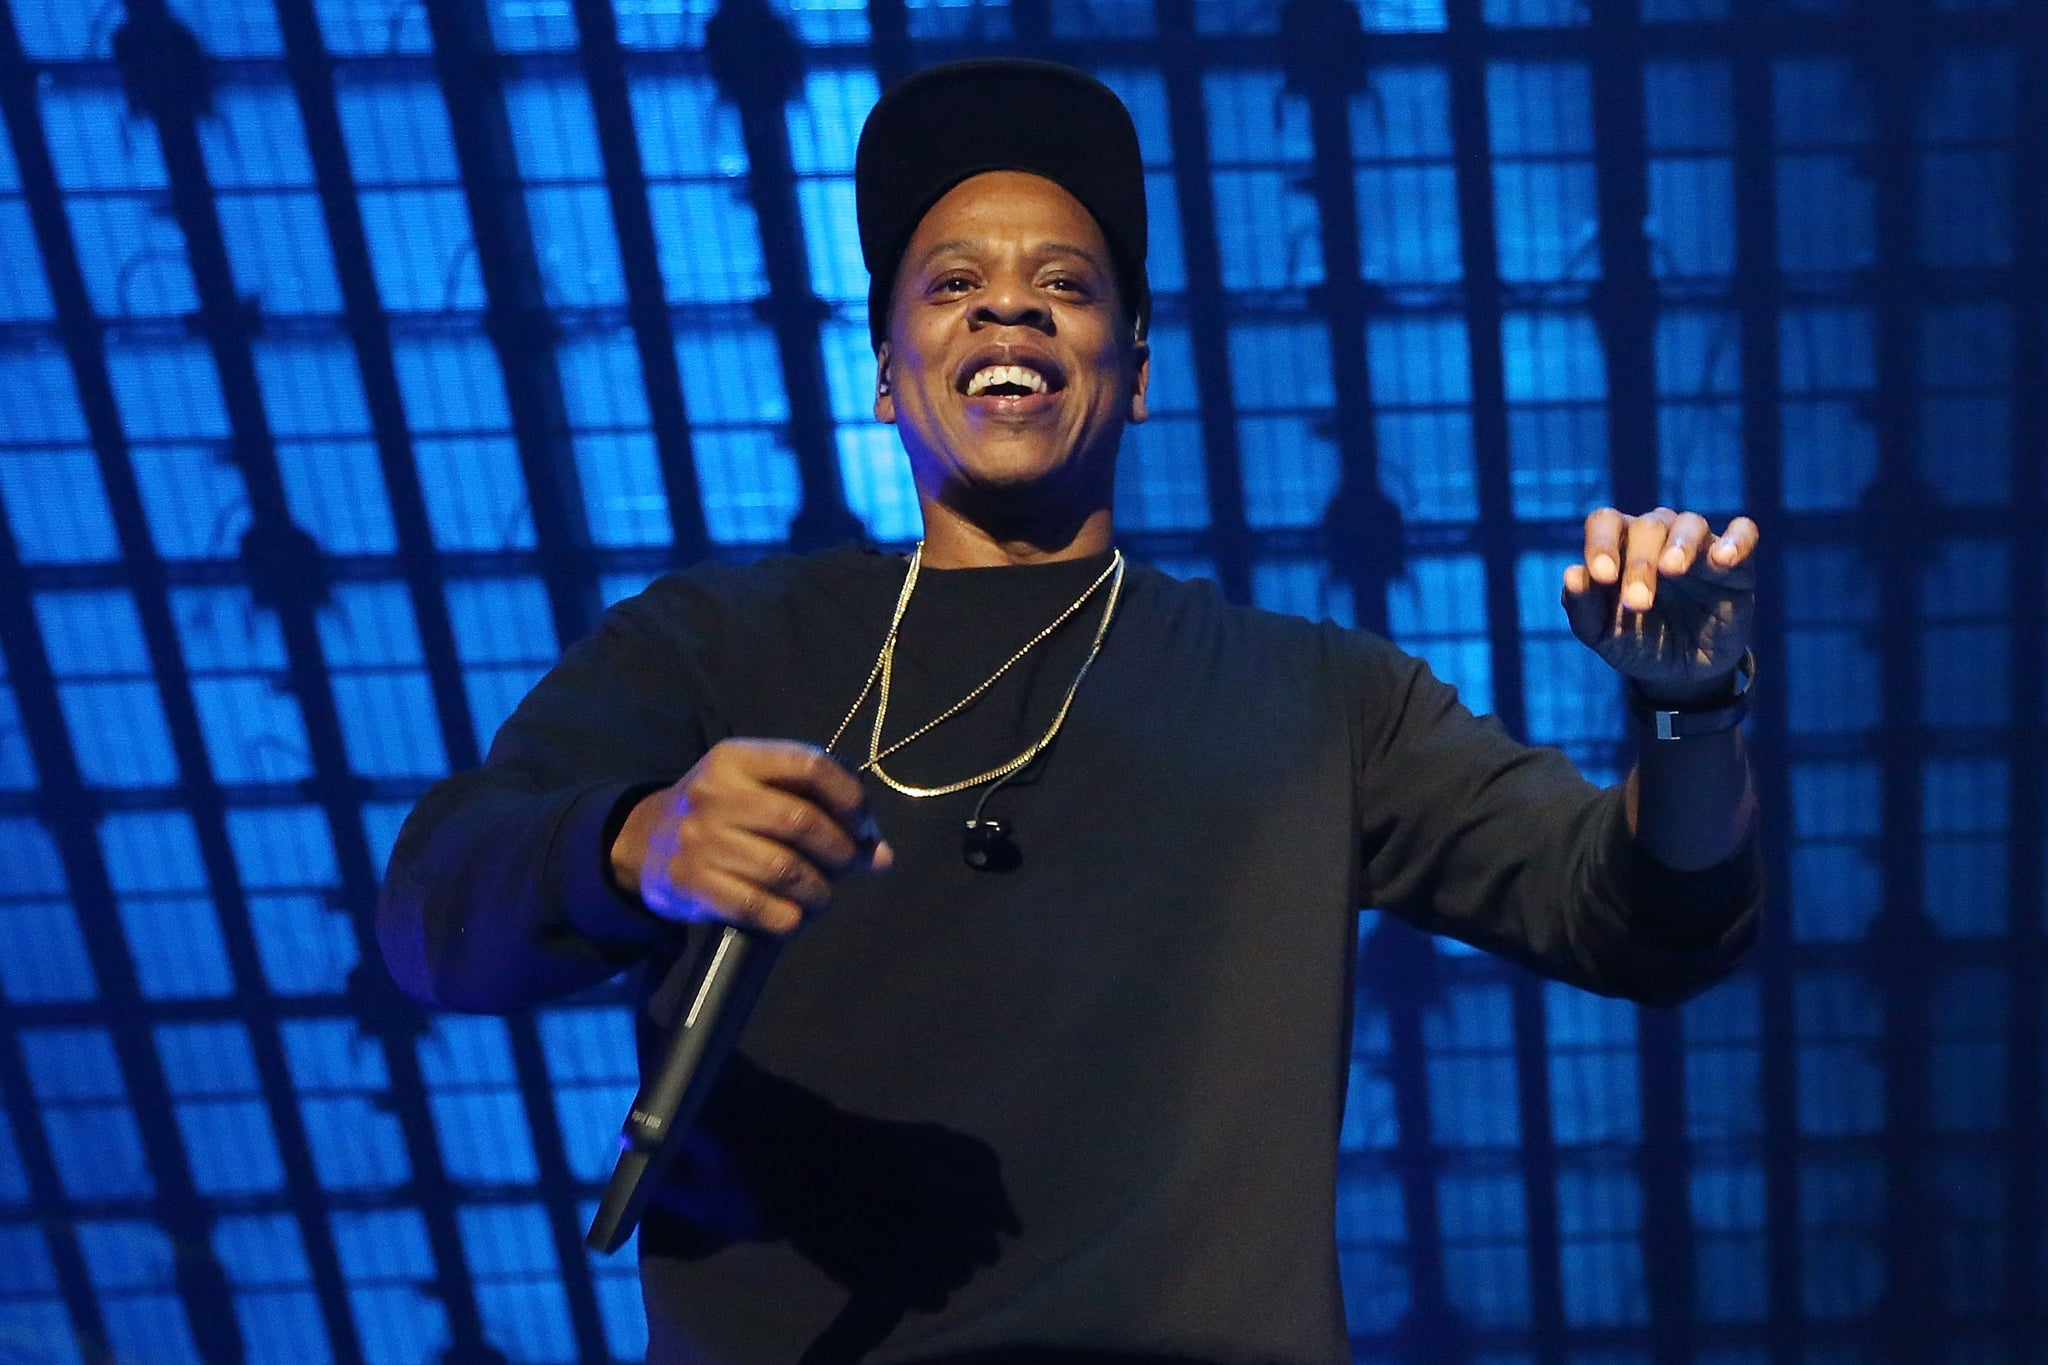 NEW YORK, NY - OCTOBER 20:  Jay Z performs during Tidal X: 1020 at Barclays centre on October 20, 2015 in the Brooklyn borough of New York City.  (Photo by Taylor Hill/FilmMagic)